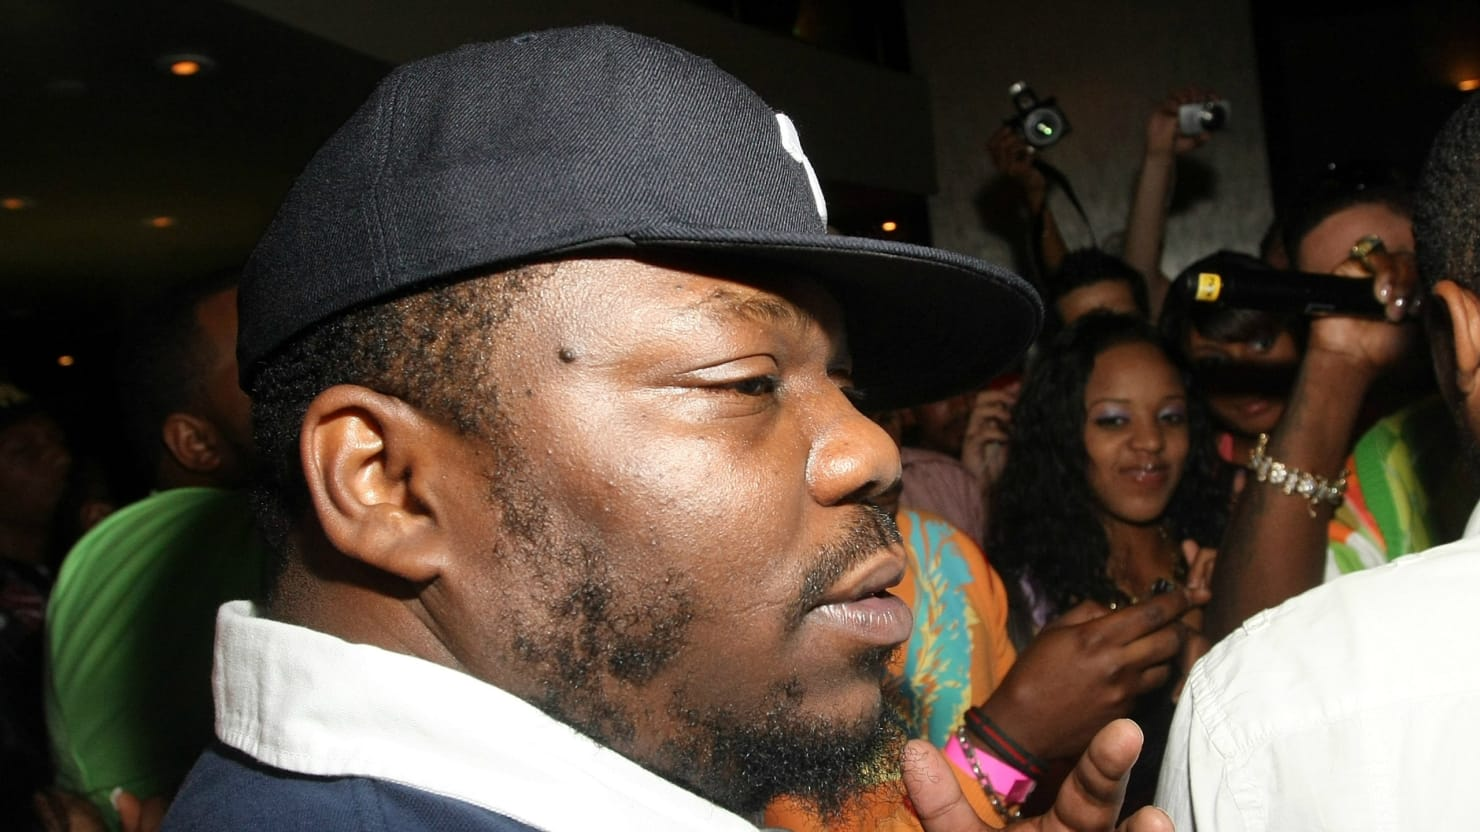 Beanie sigel the latest rapper to be shot nude (71 images)